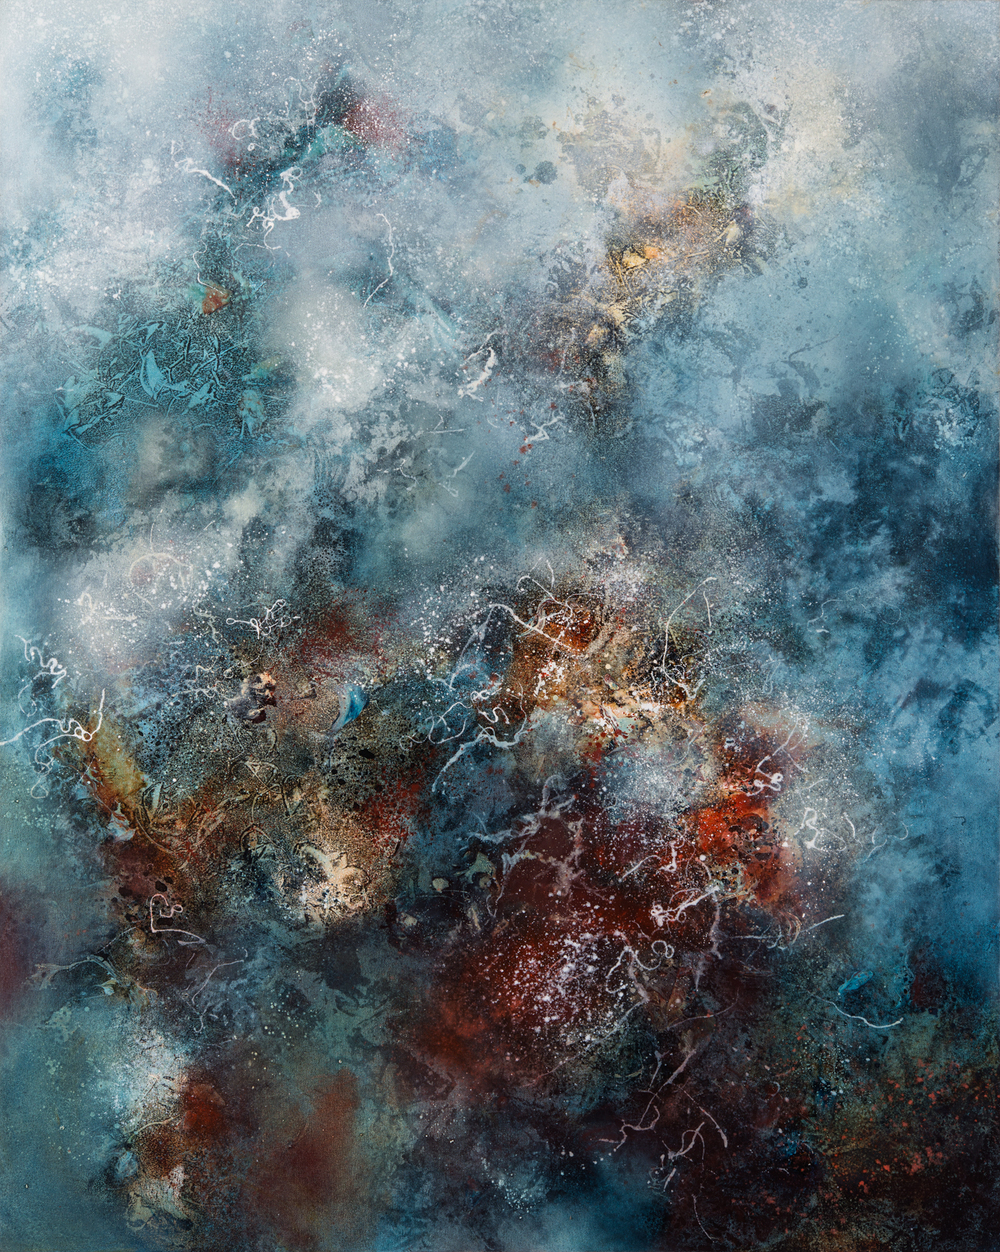 Vortex, oil on canvas, 127 x 102 cm, SOLD